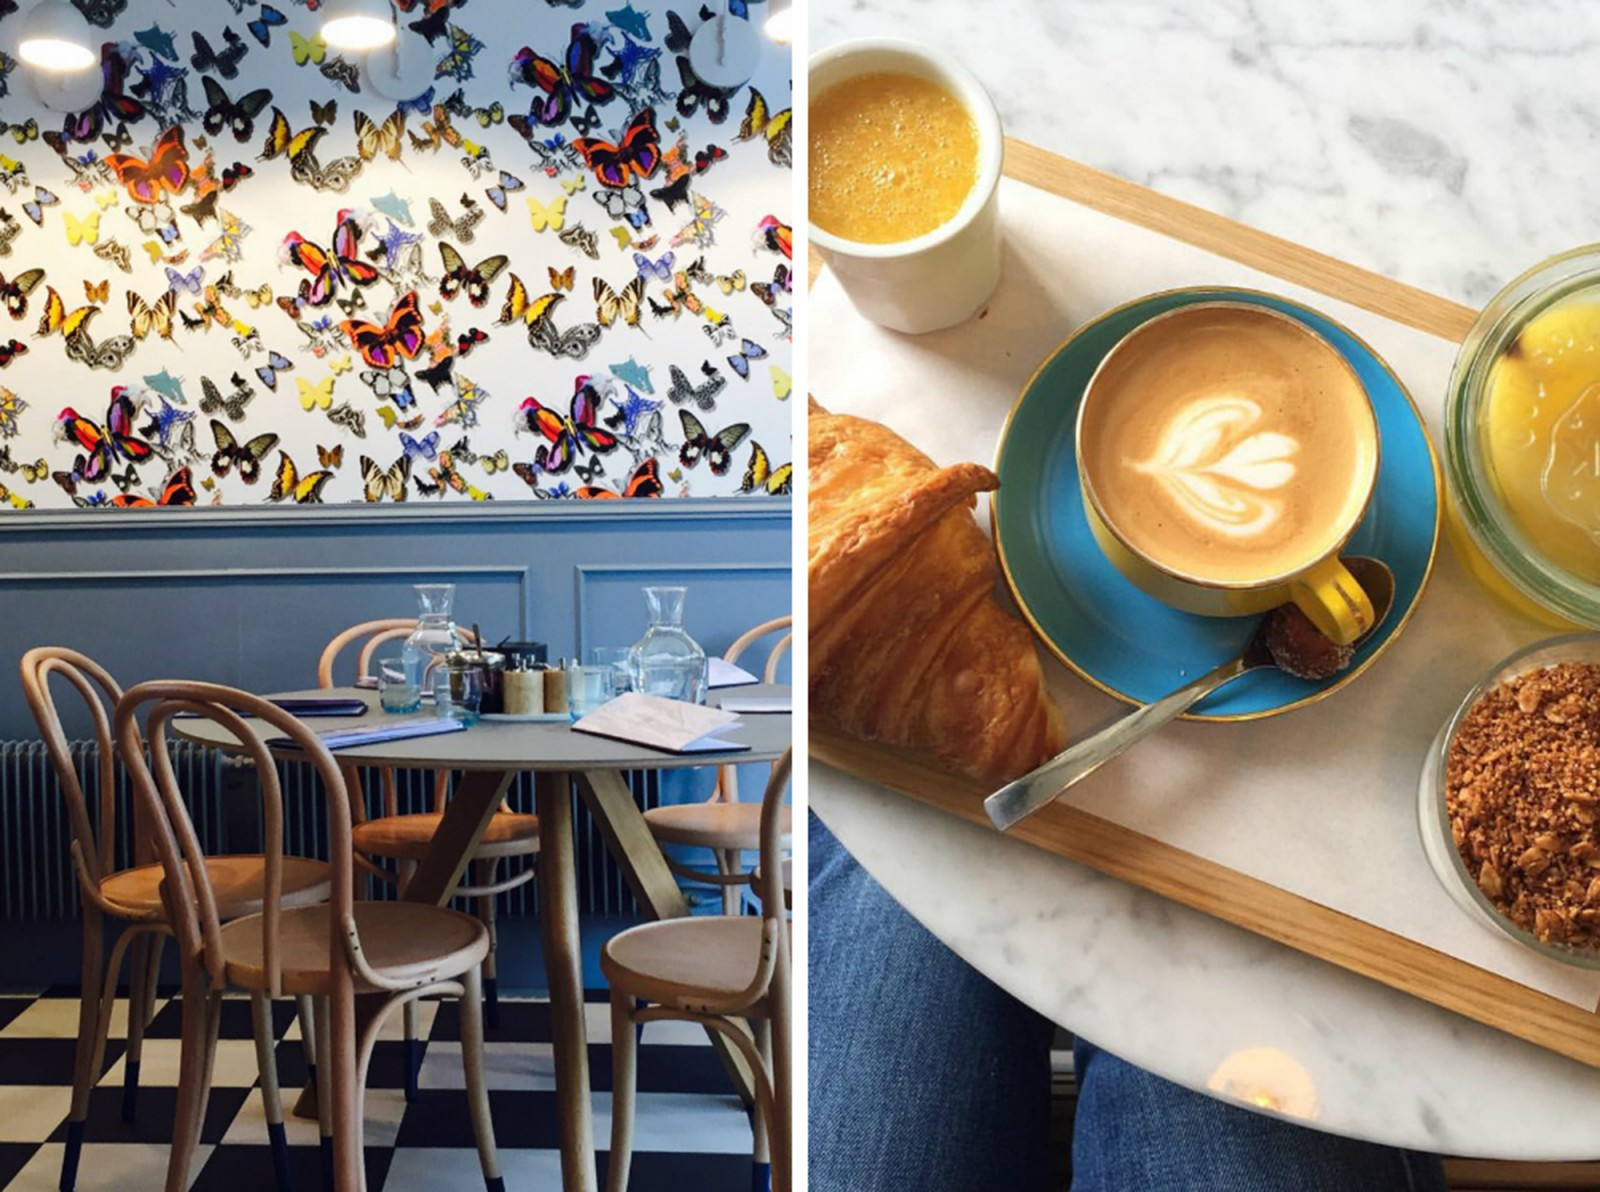 One of the best places to go for brunch in Paris is Hardware Sociéte in Montmartre, which has butterfly wallpaper and wooden tables and chairs (left) and does buttery croissants and coffee (right).